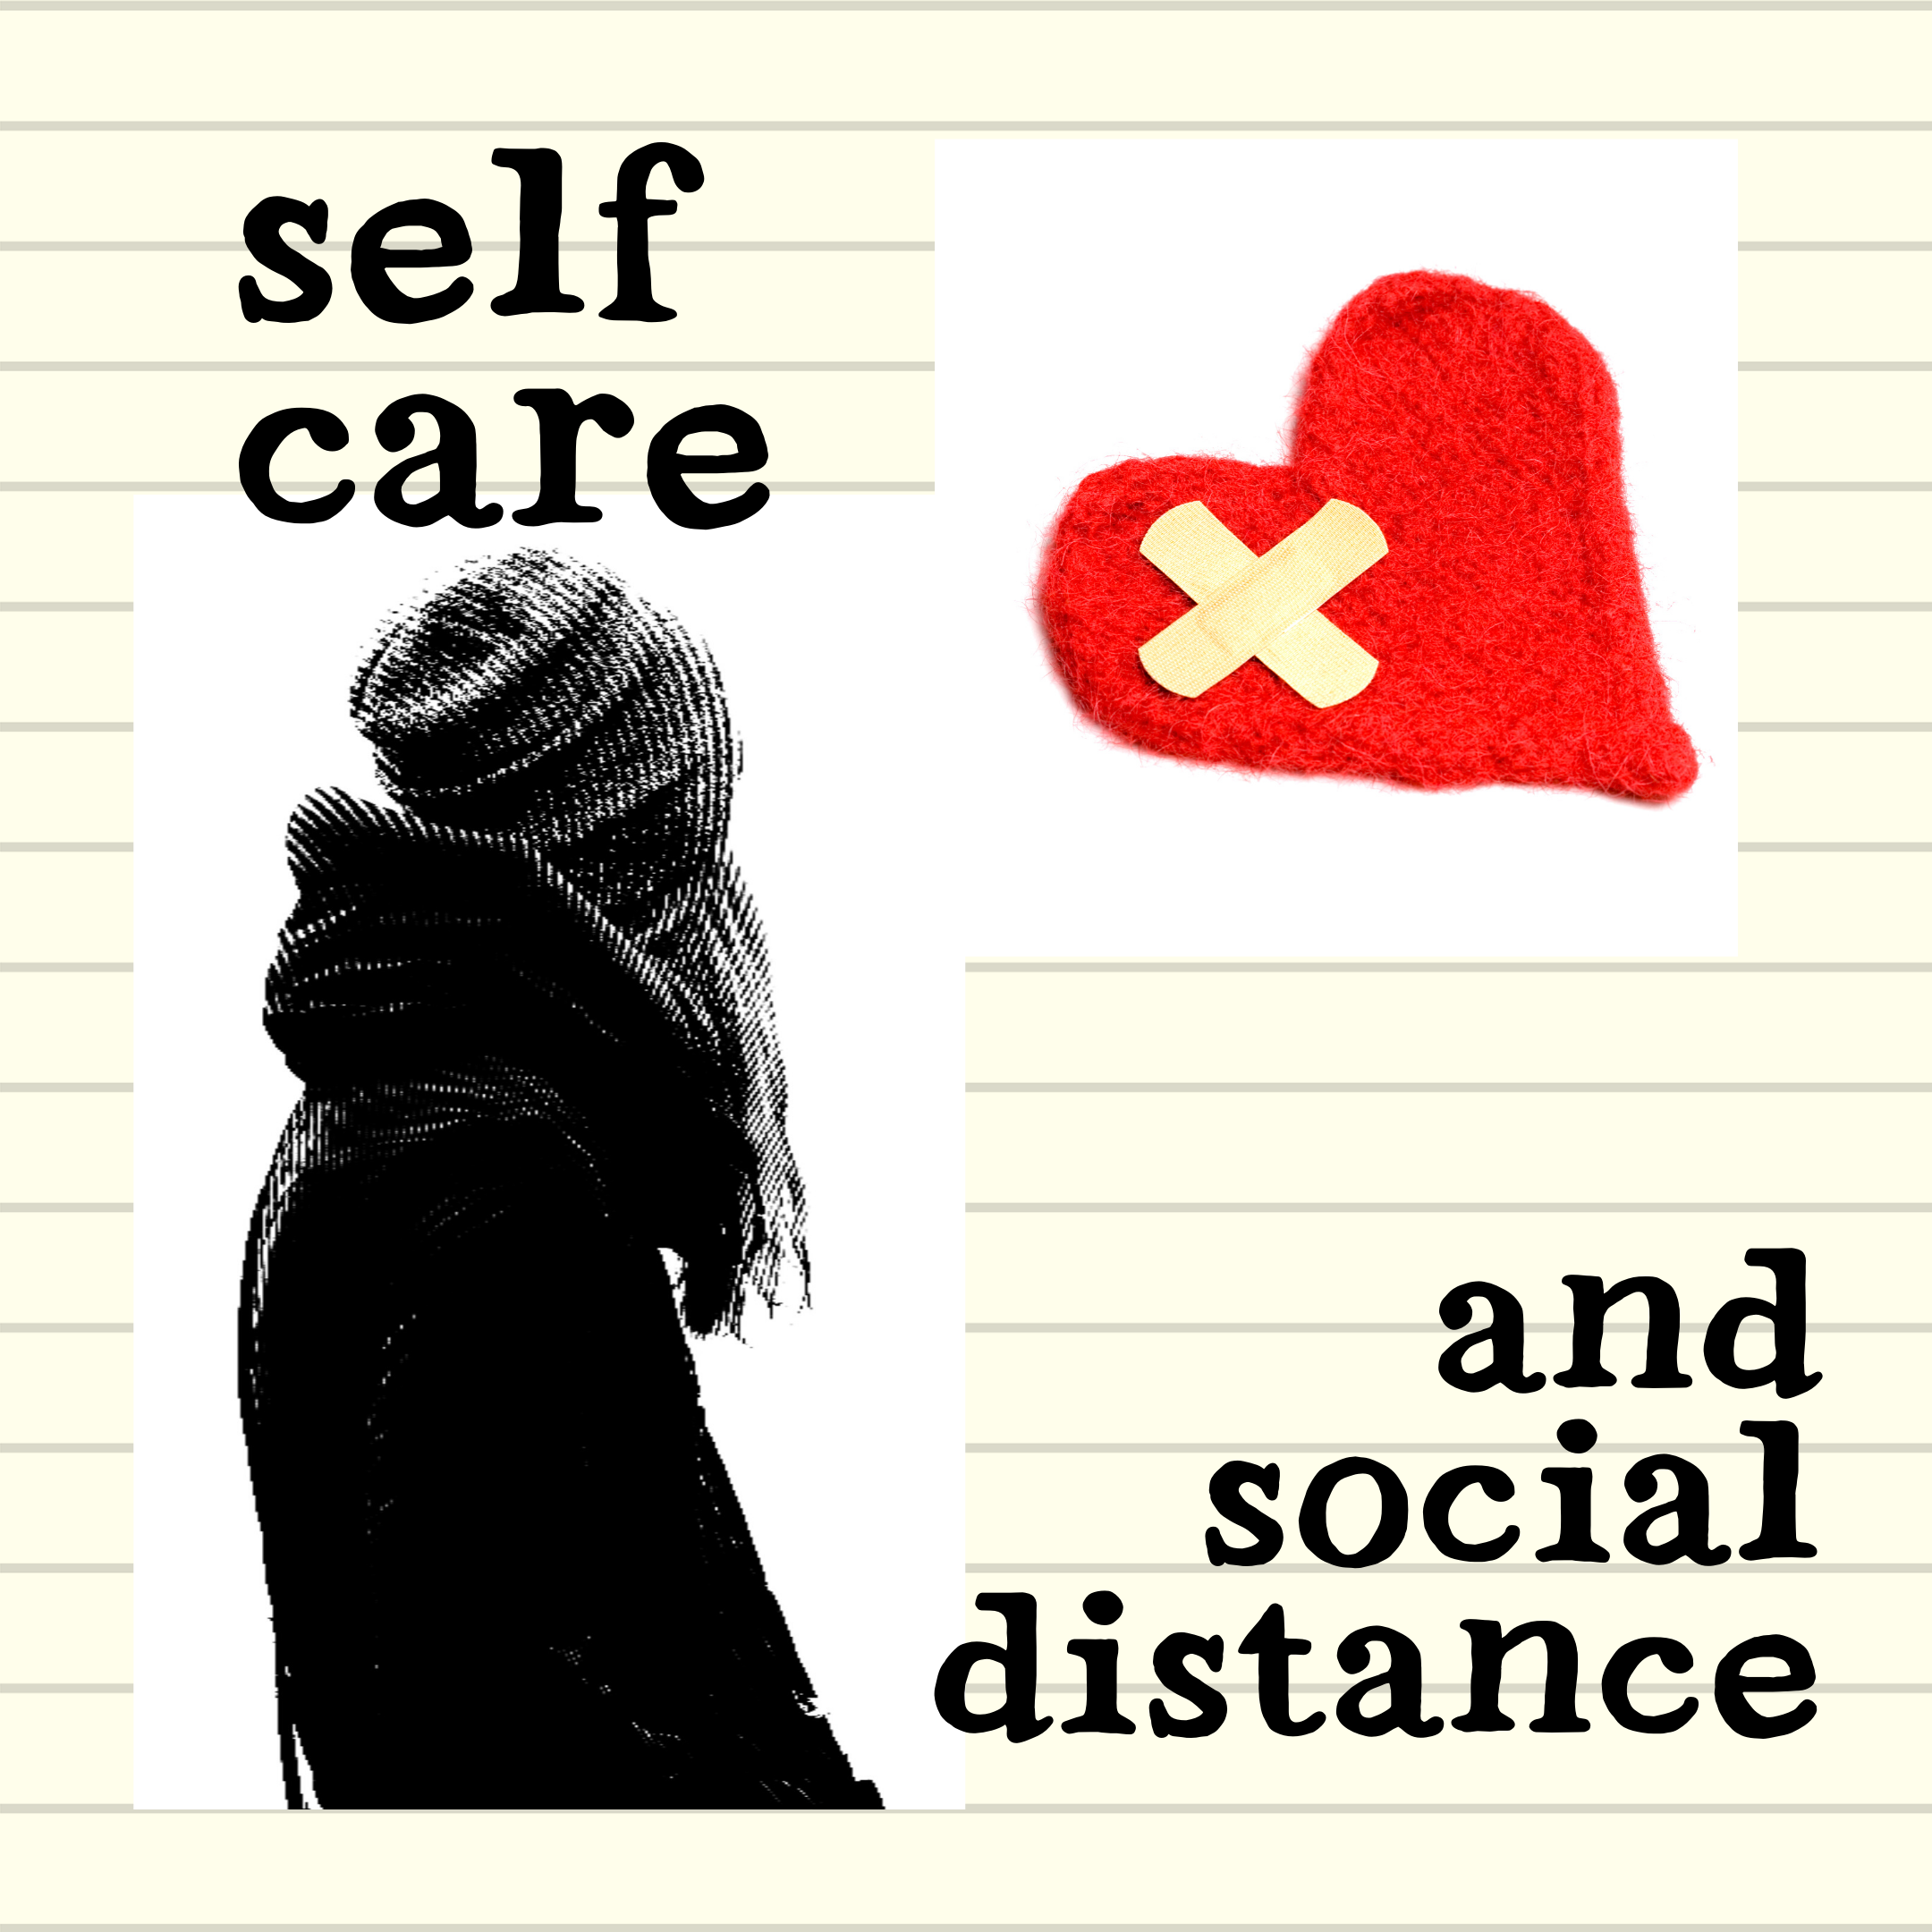 self-care and social distance mini collage